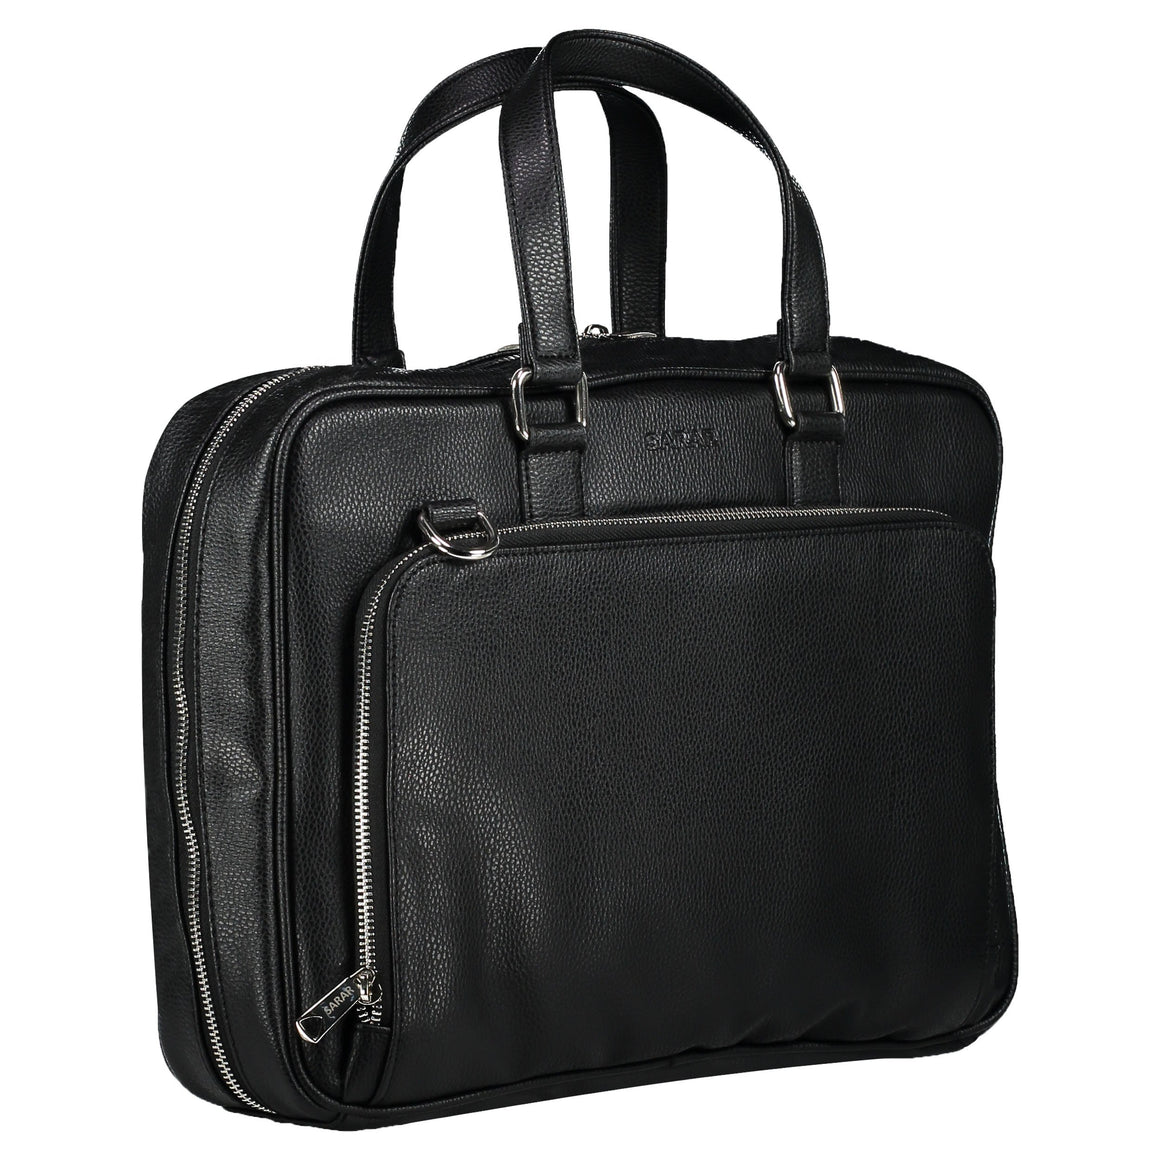 Zipper leather black bag with one main compartment